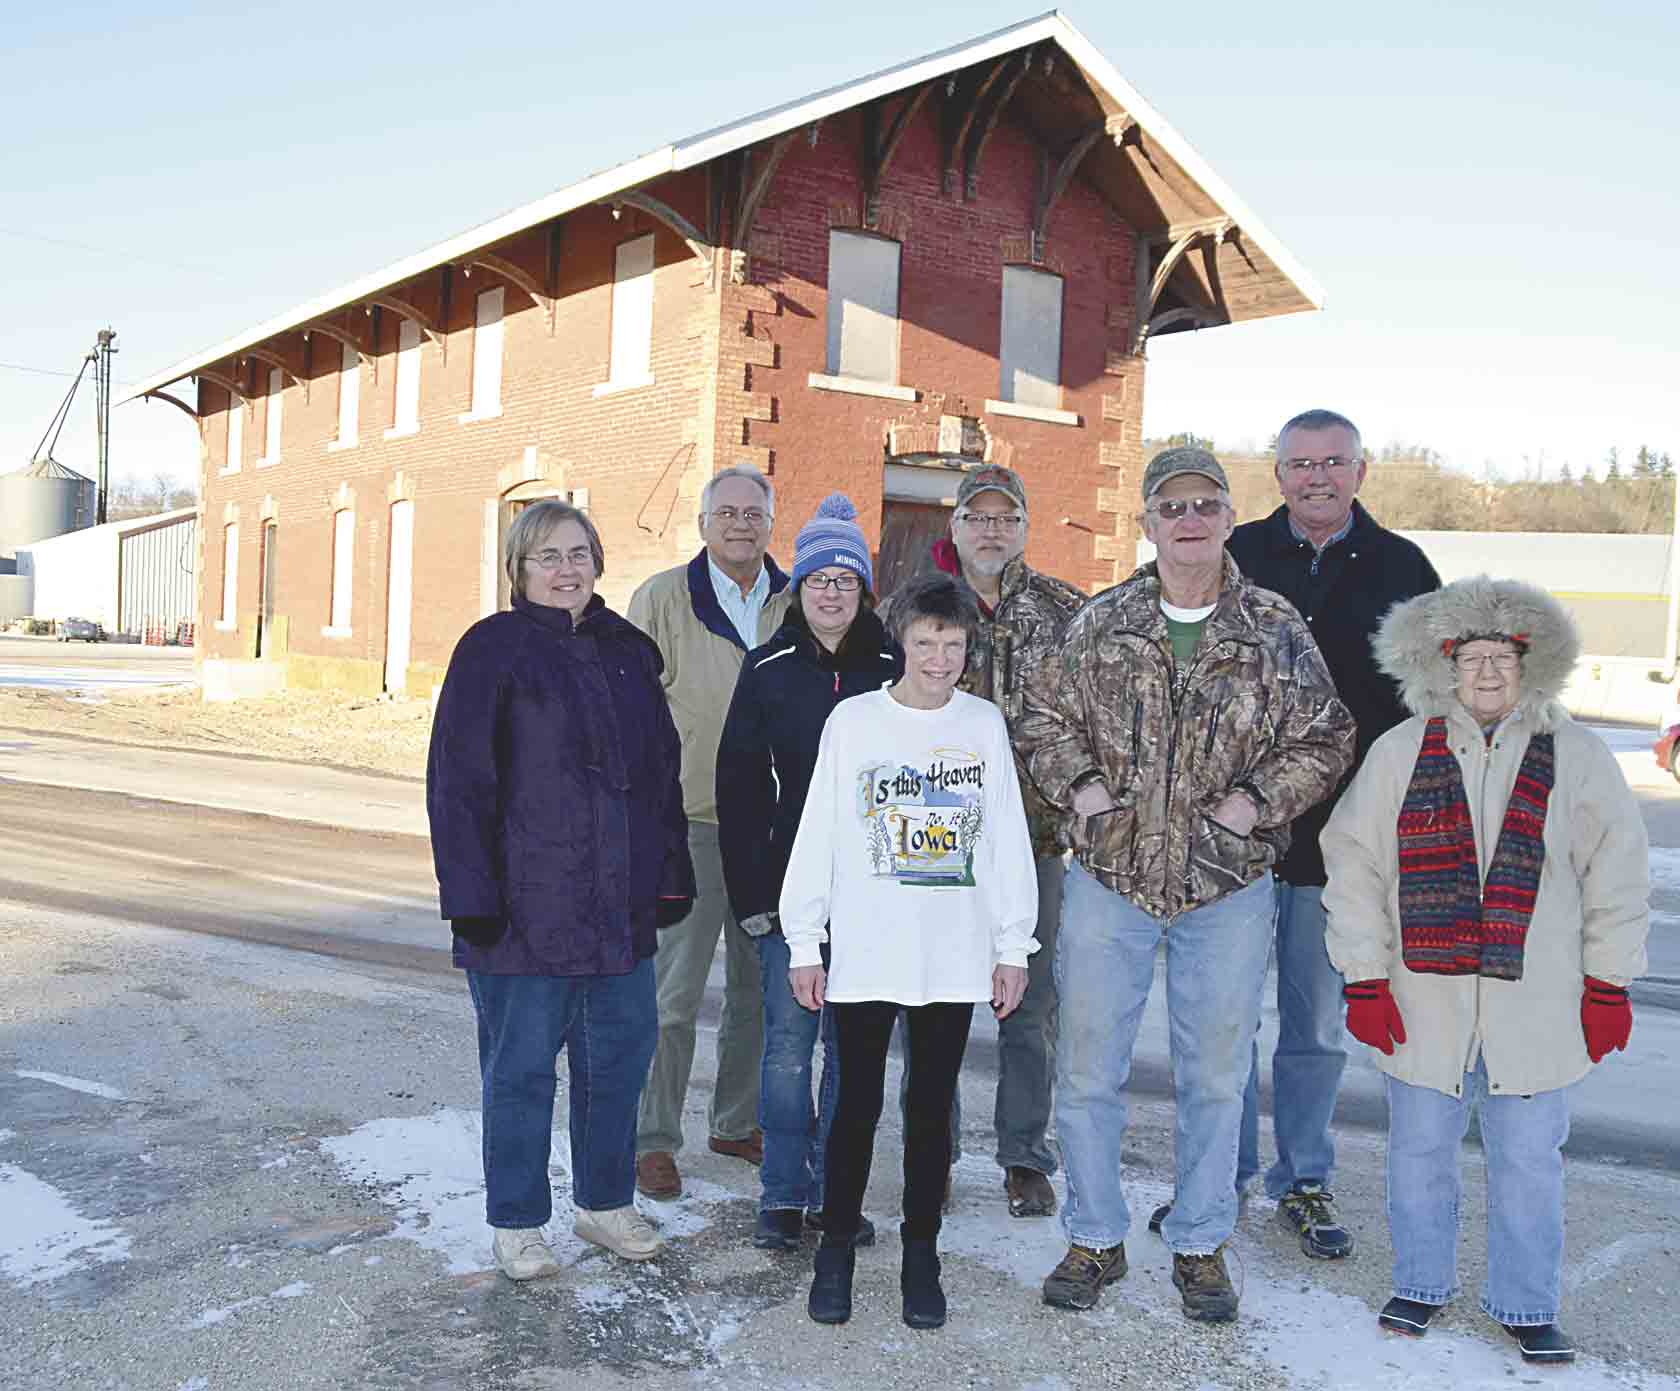 Viafield has agreed to deed over the historic Rock Island Railroad depot in Clermont to the Clermont Historical Society, so the Historic Rock Island Railroad Depot Restoration Committee can begin restoring the building. Members from the committee, thanked including (front, l-r) Kathy (Meier...